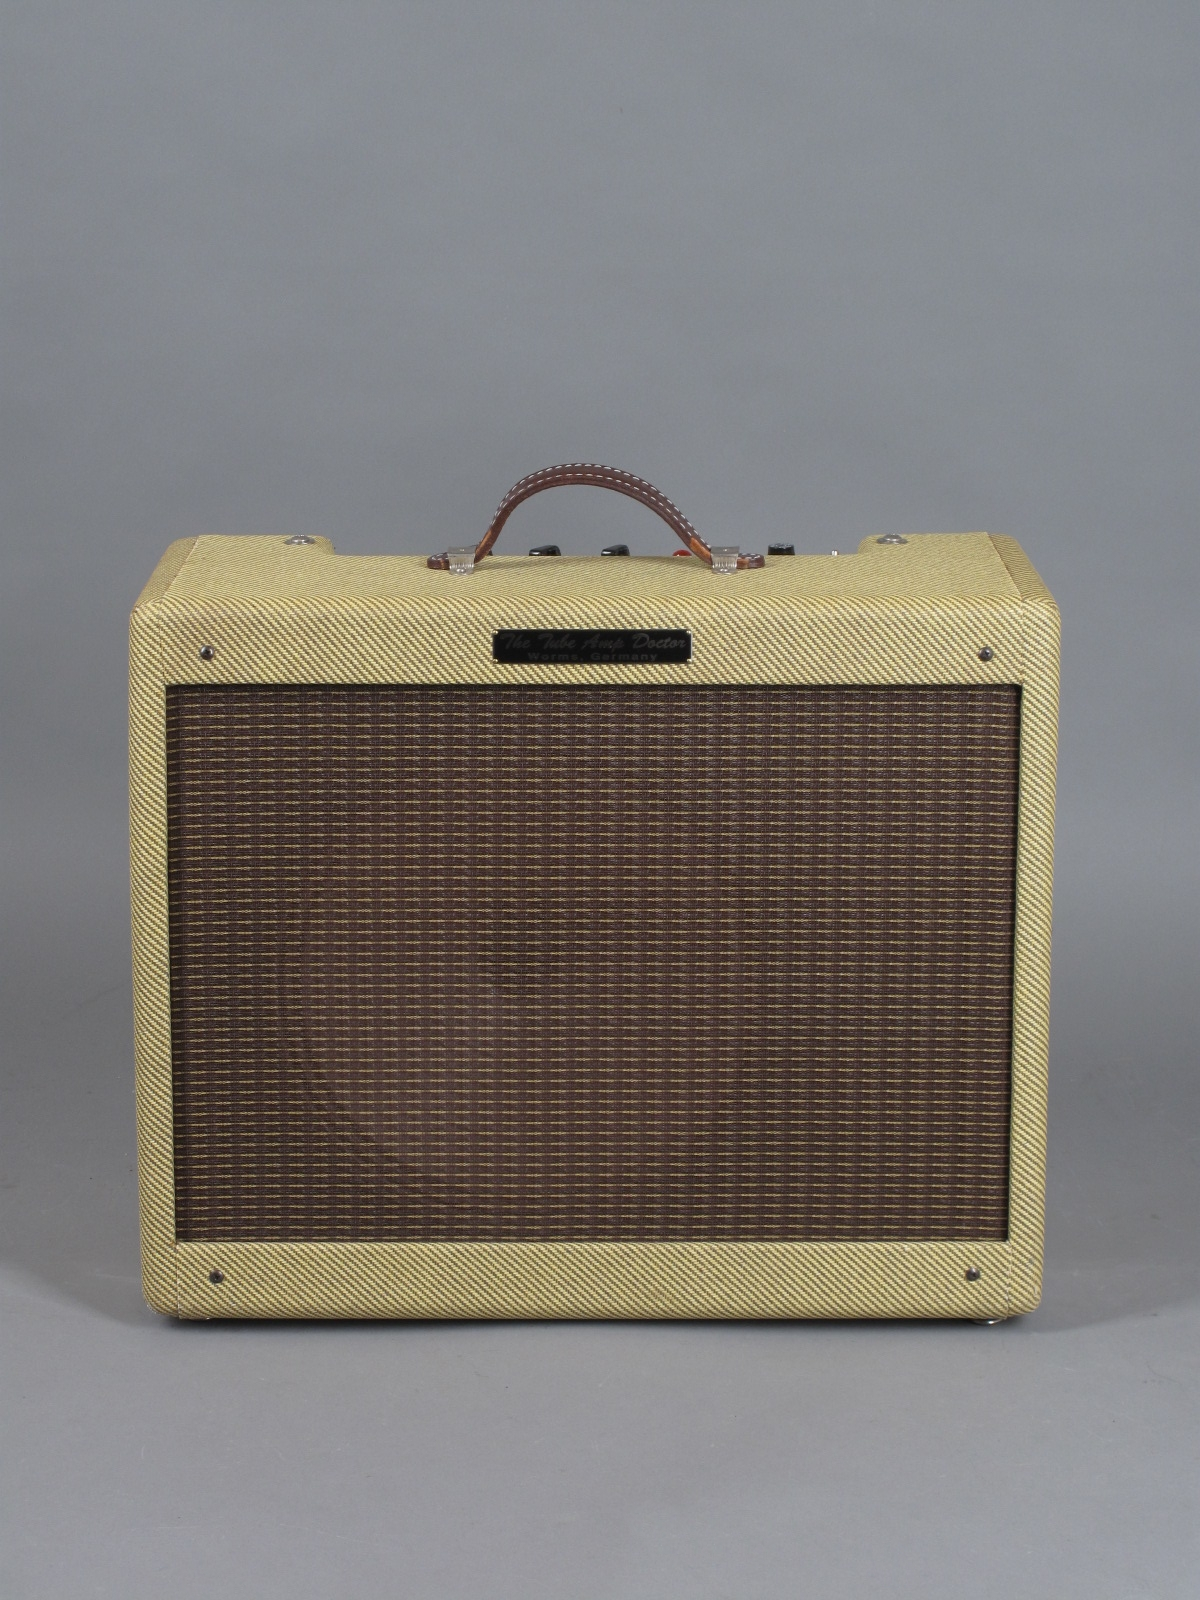 https://guitarpoint.de/app/uploads/products/tad-tweed-combo/2010-Tube-Amp-Doctor-Tweed-Deluxe-1.jpg